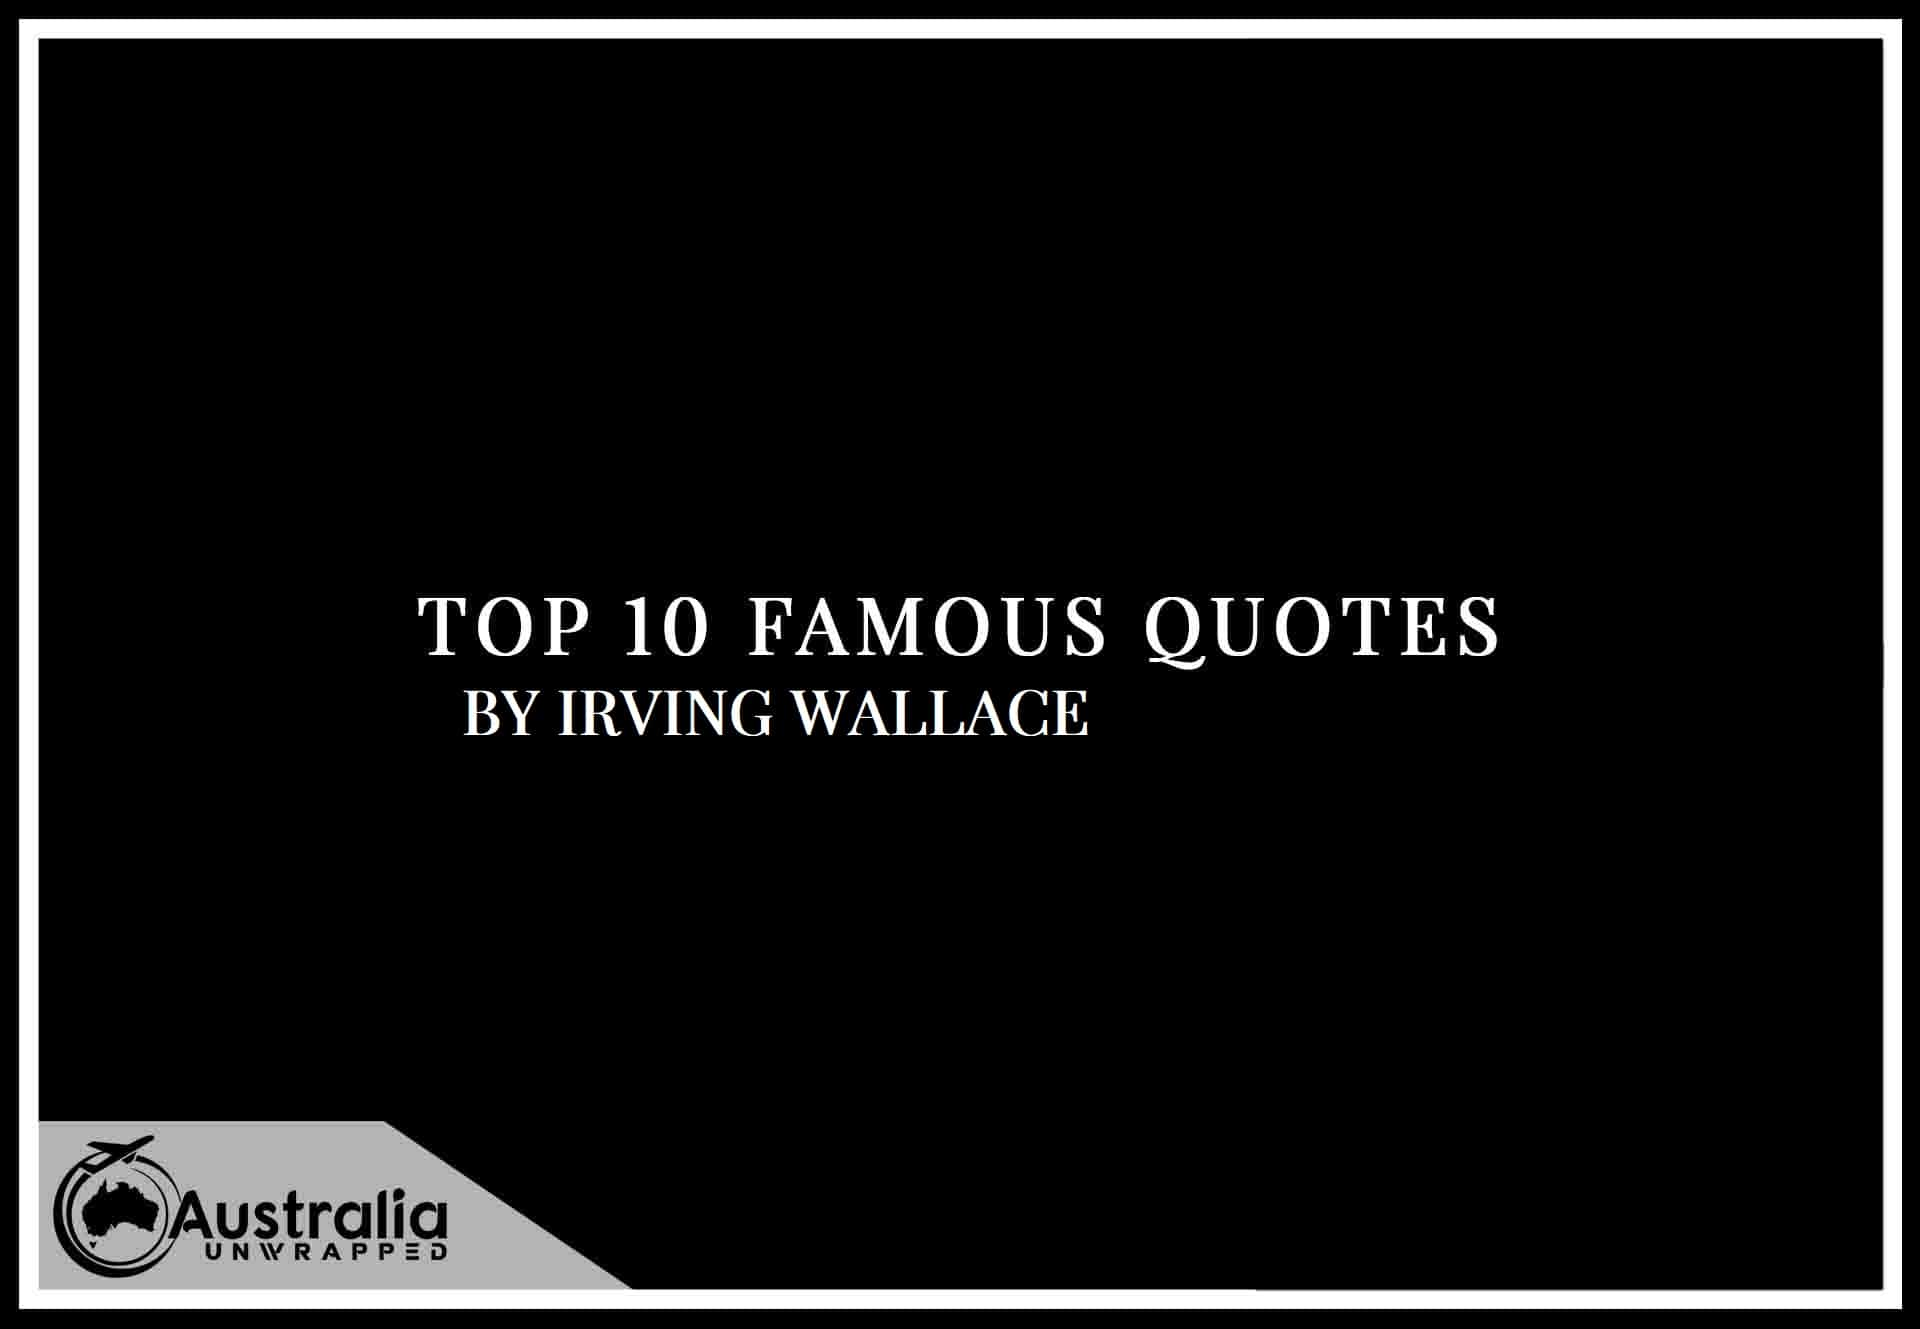 Top 10 Famous Quotes by Author Irving Wallace